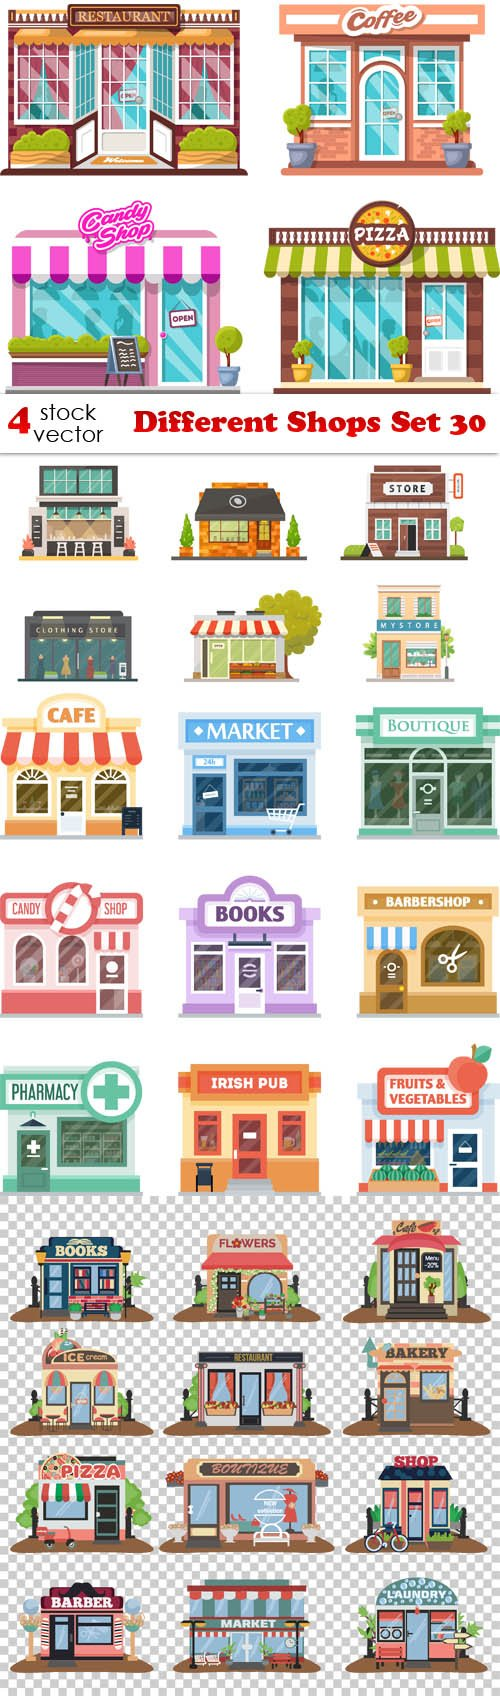 Vectors - Different Shops Set 30